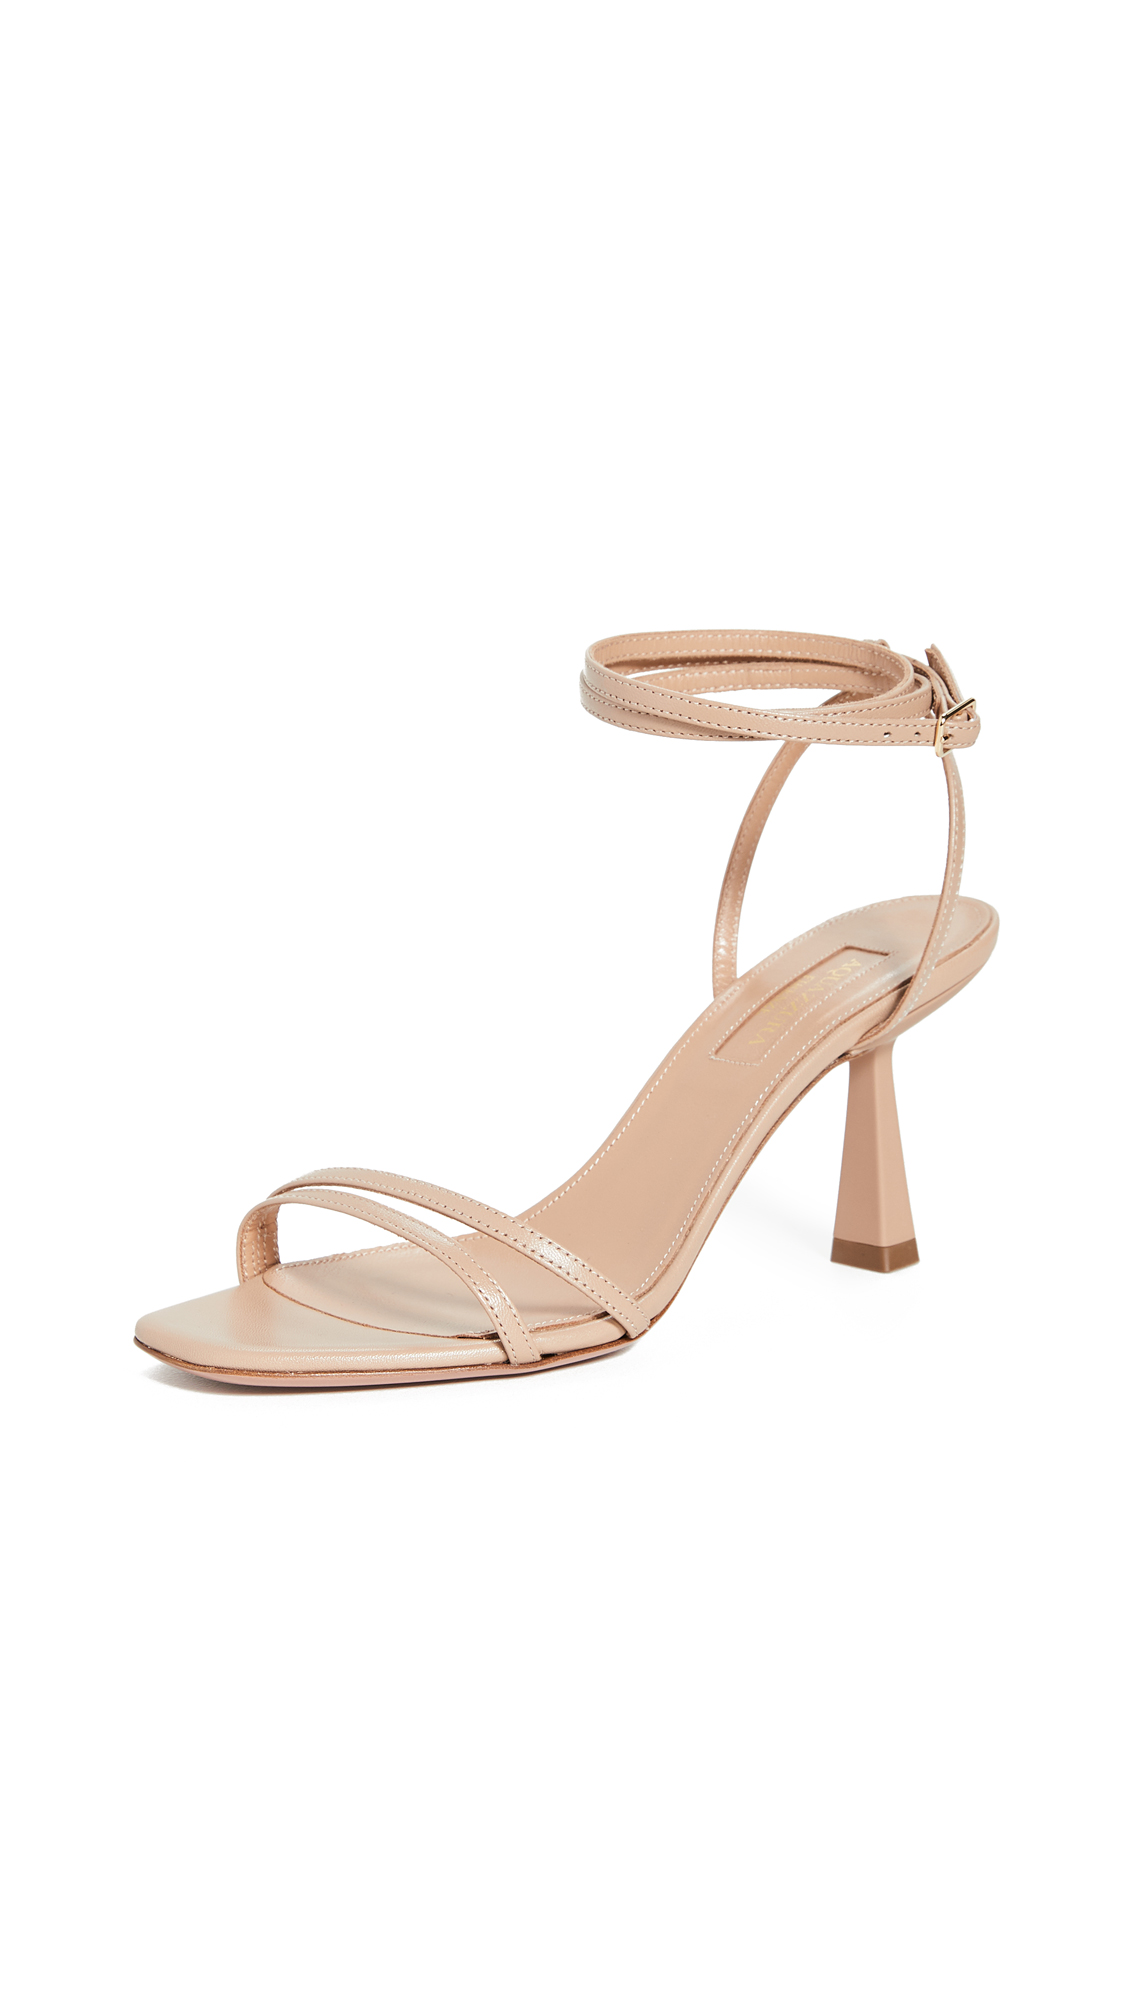 Buy Aquazzura Isabel Sandals 75mm online, shop Aquazzura